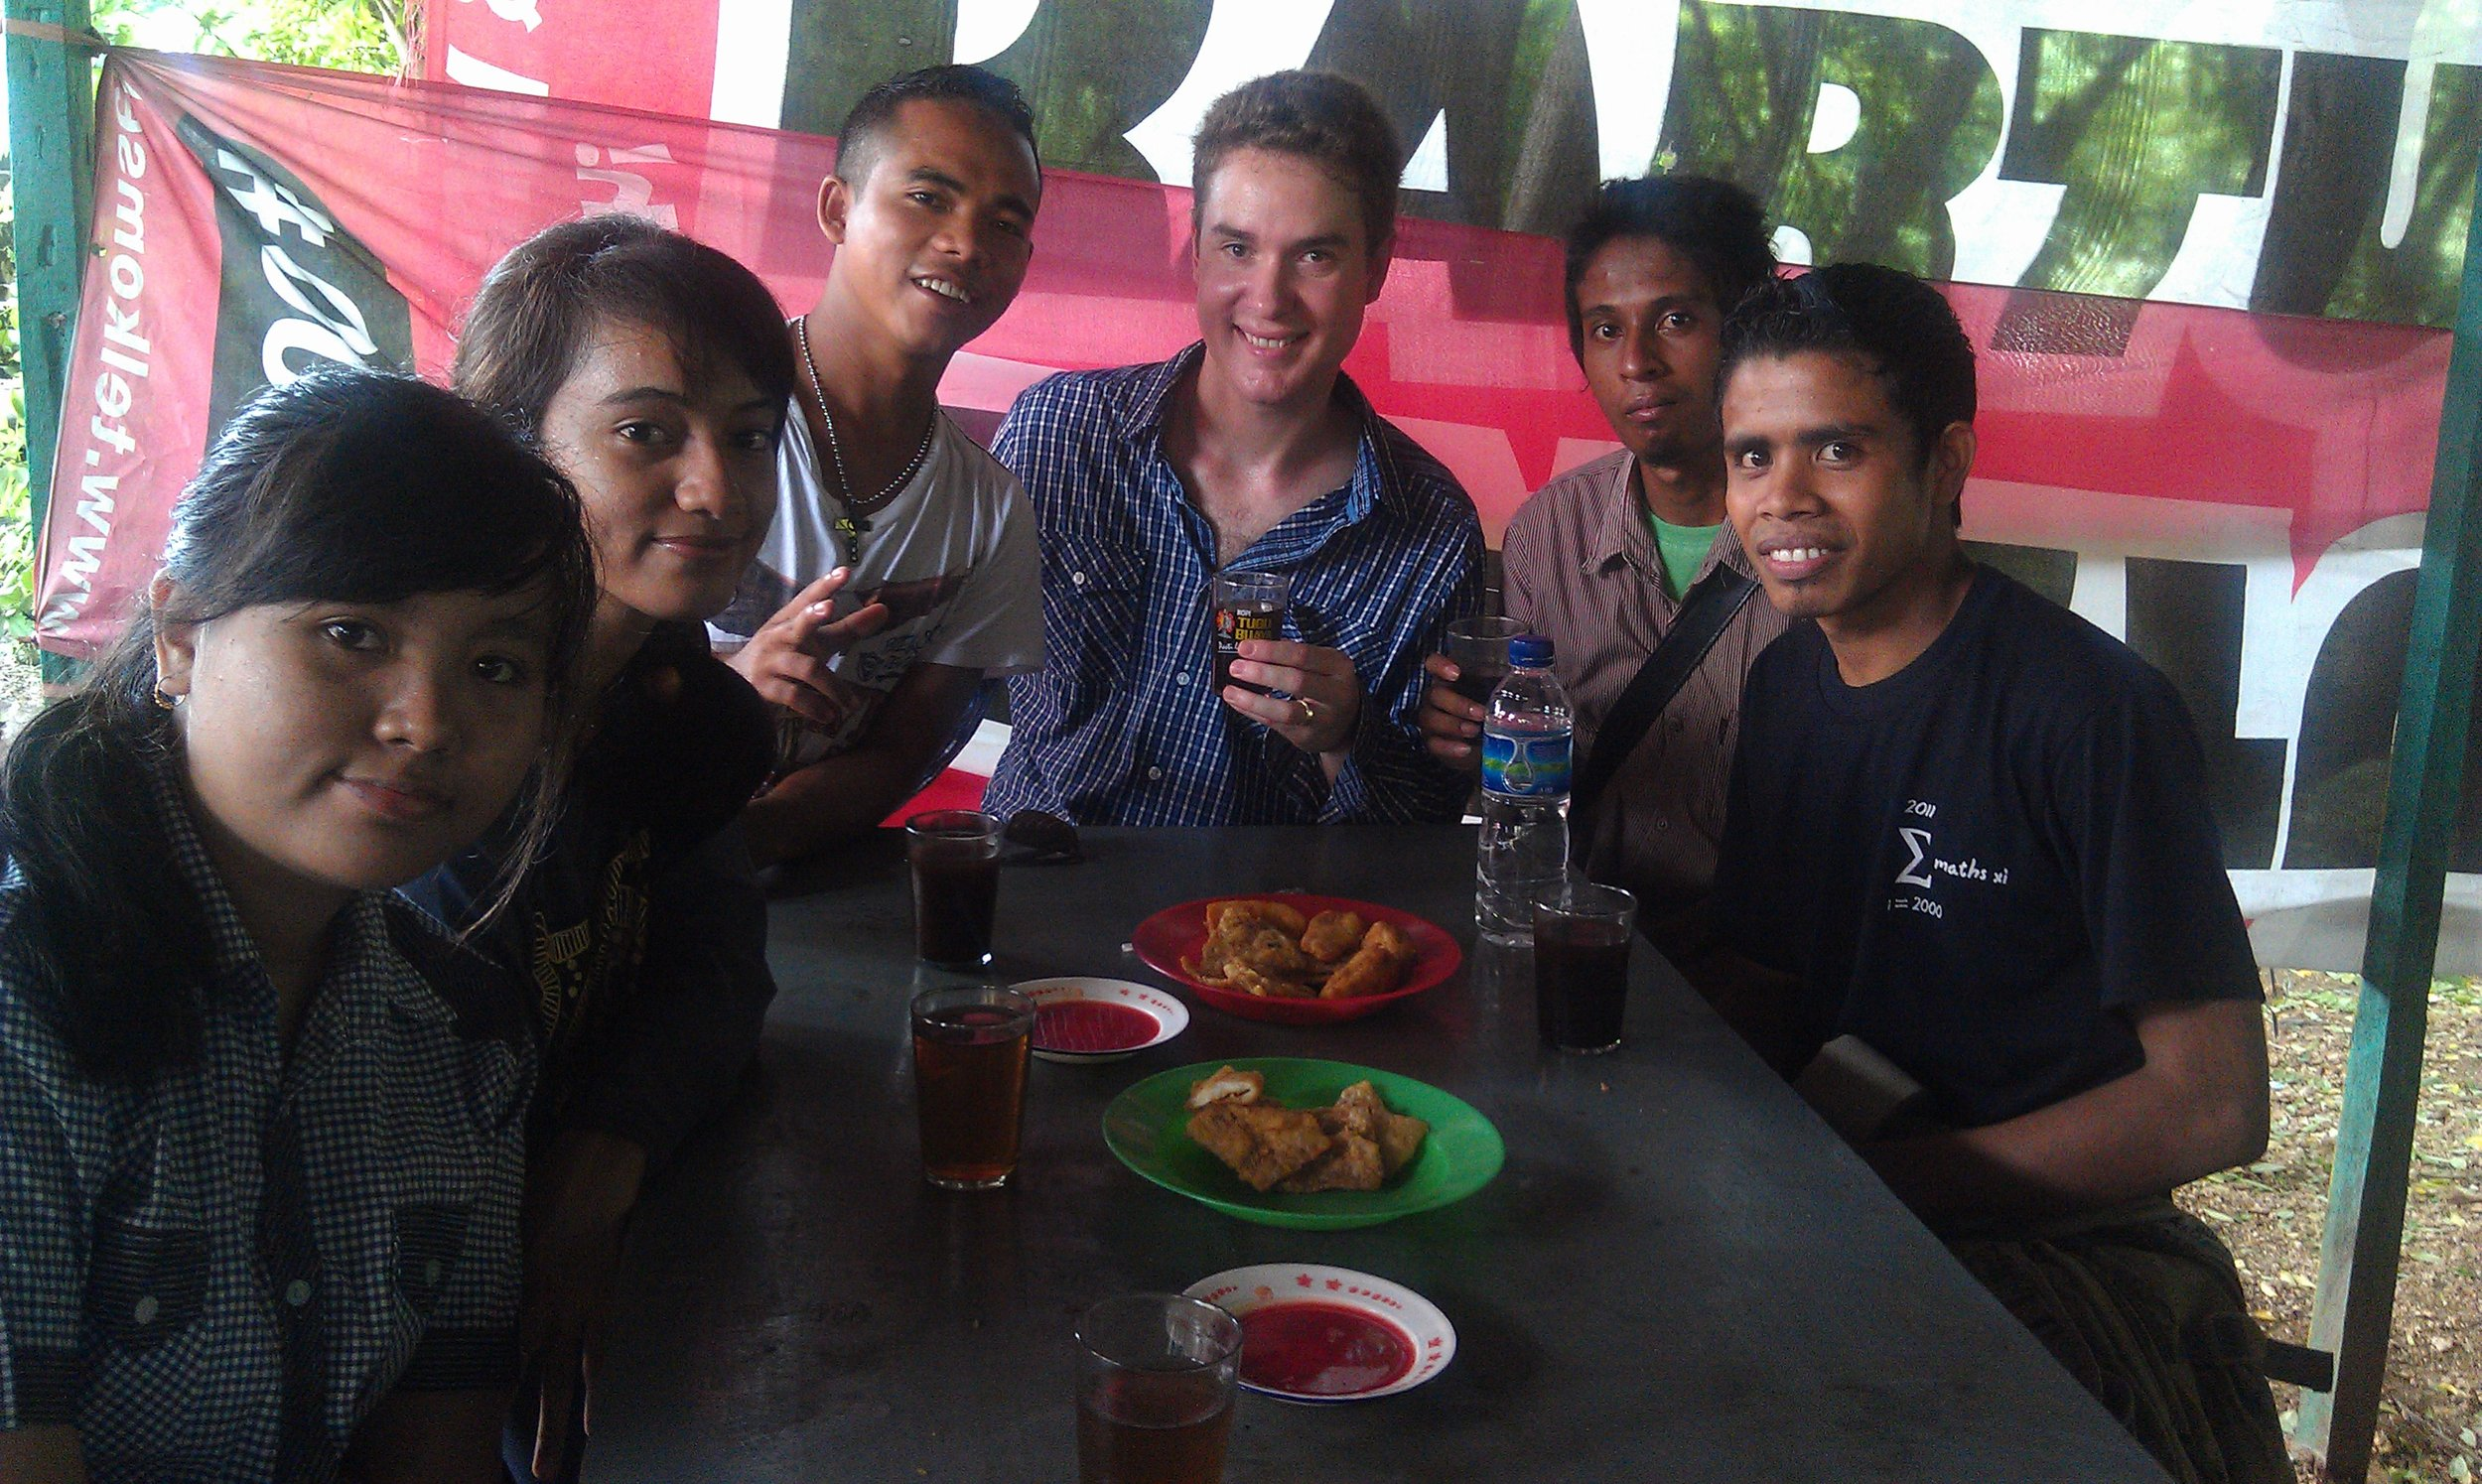 Local language for a local hangout - UNDANA Campus in Kupang, Timor, Indonesia